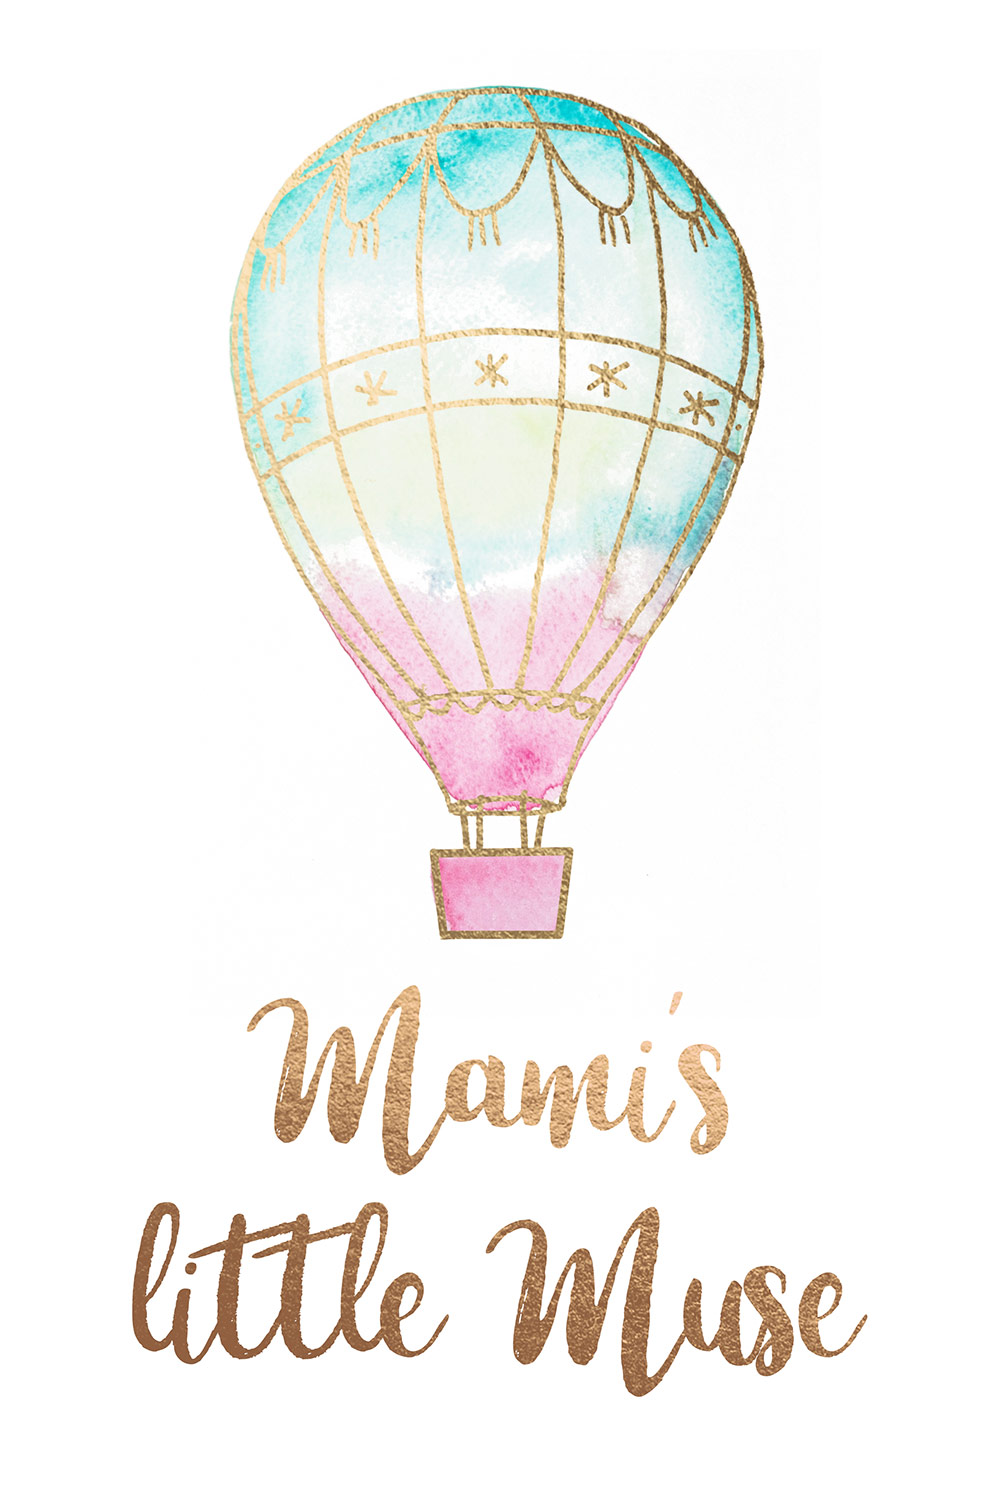 etsy shop branding design by heartmade.es for Mamis Little Muse